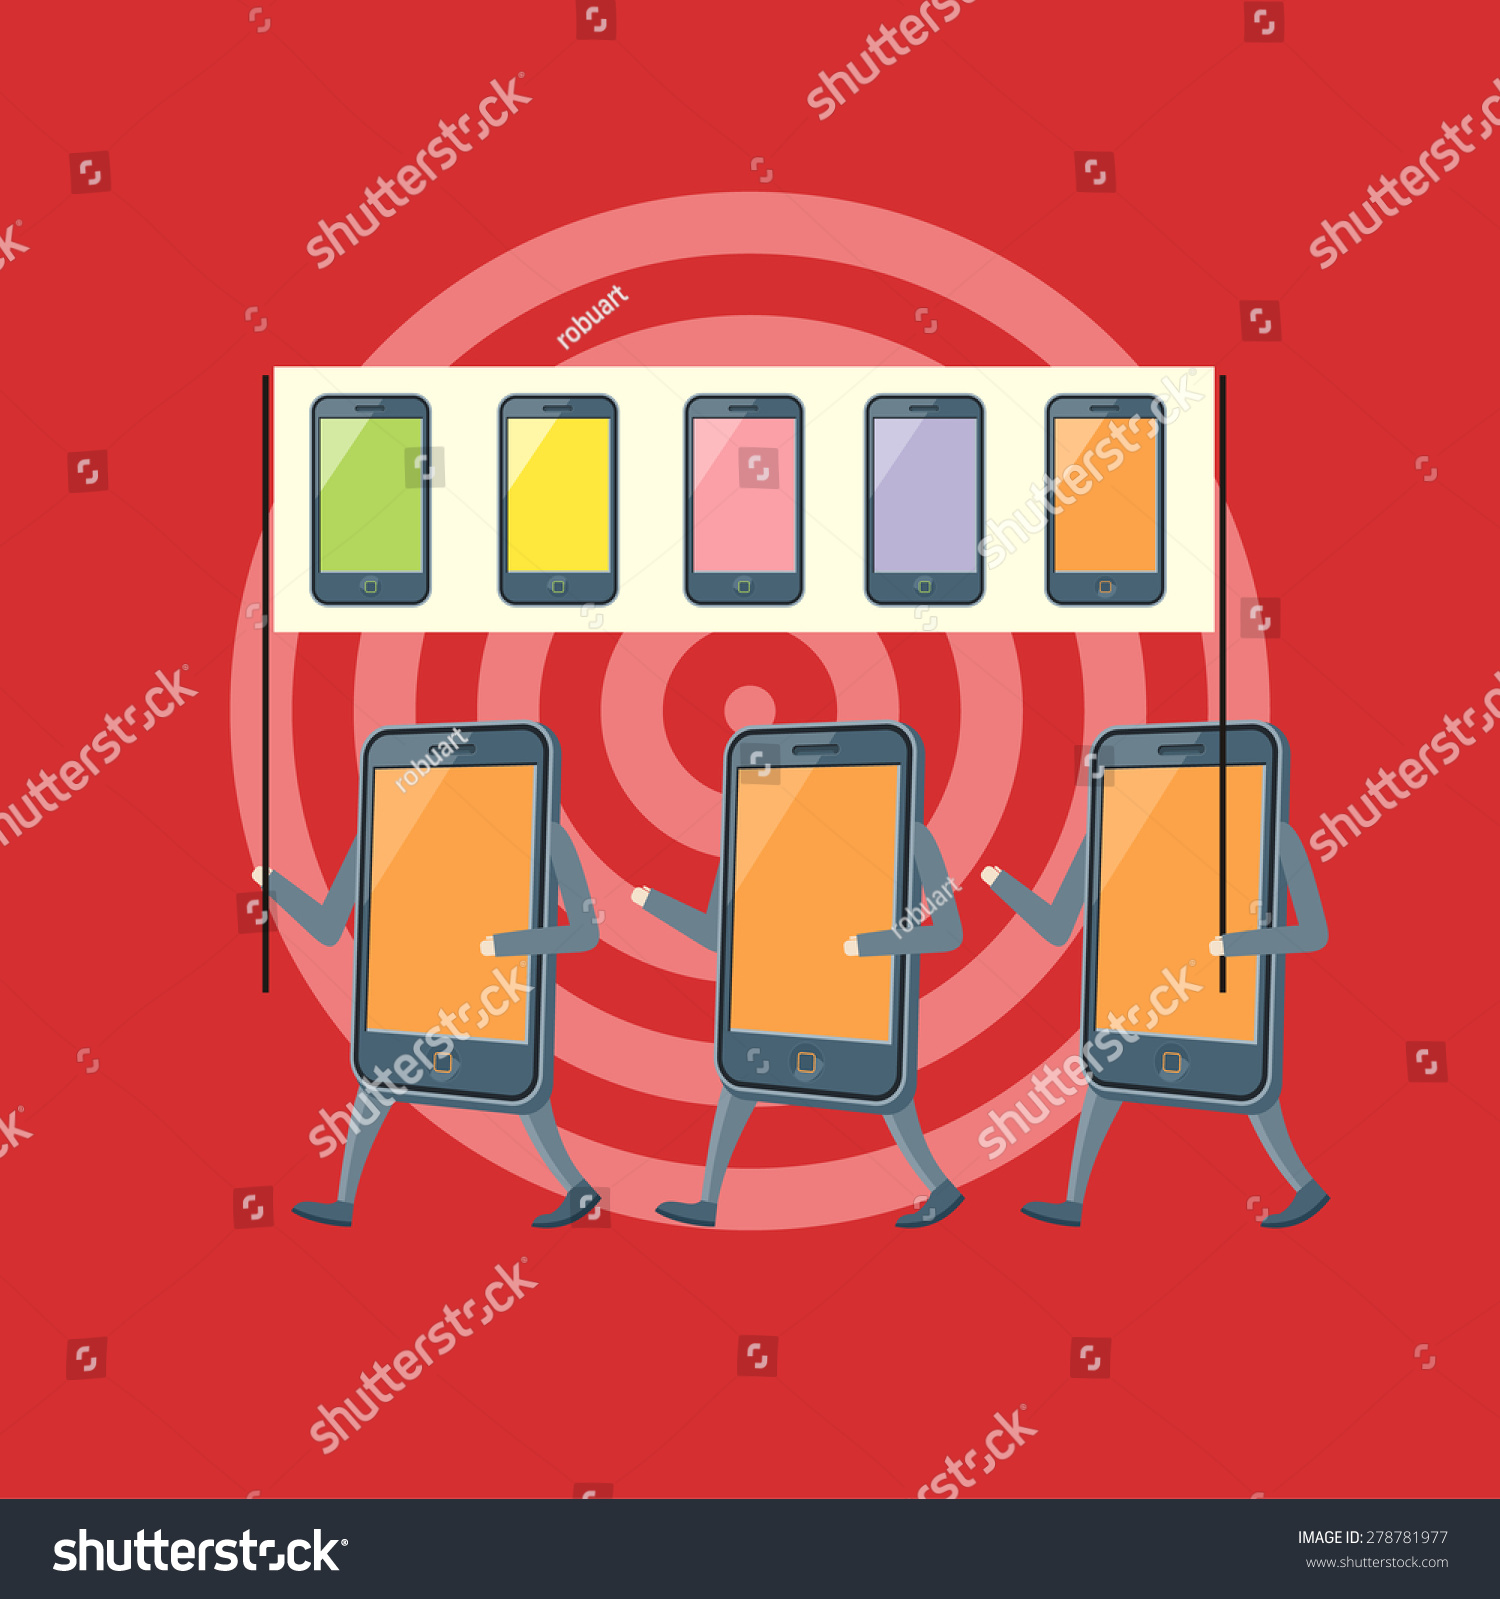 slogans on mobile phones Mobile homes, of rv's, are recreational vehicles that are extremely accommodating they are literally full homes on wheels they give people the ability.